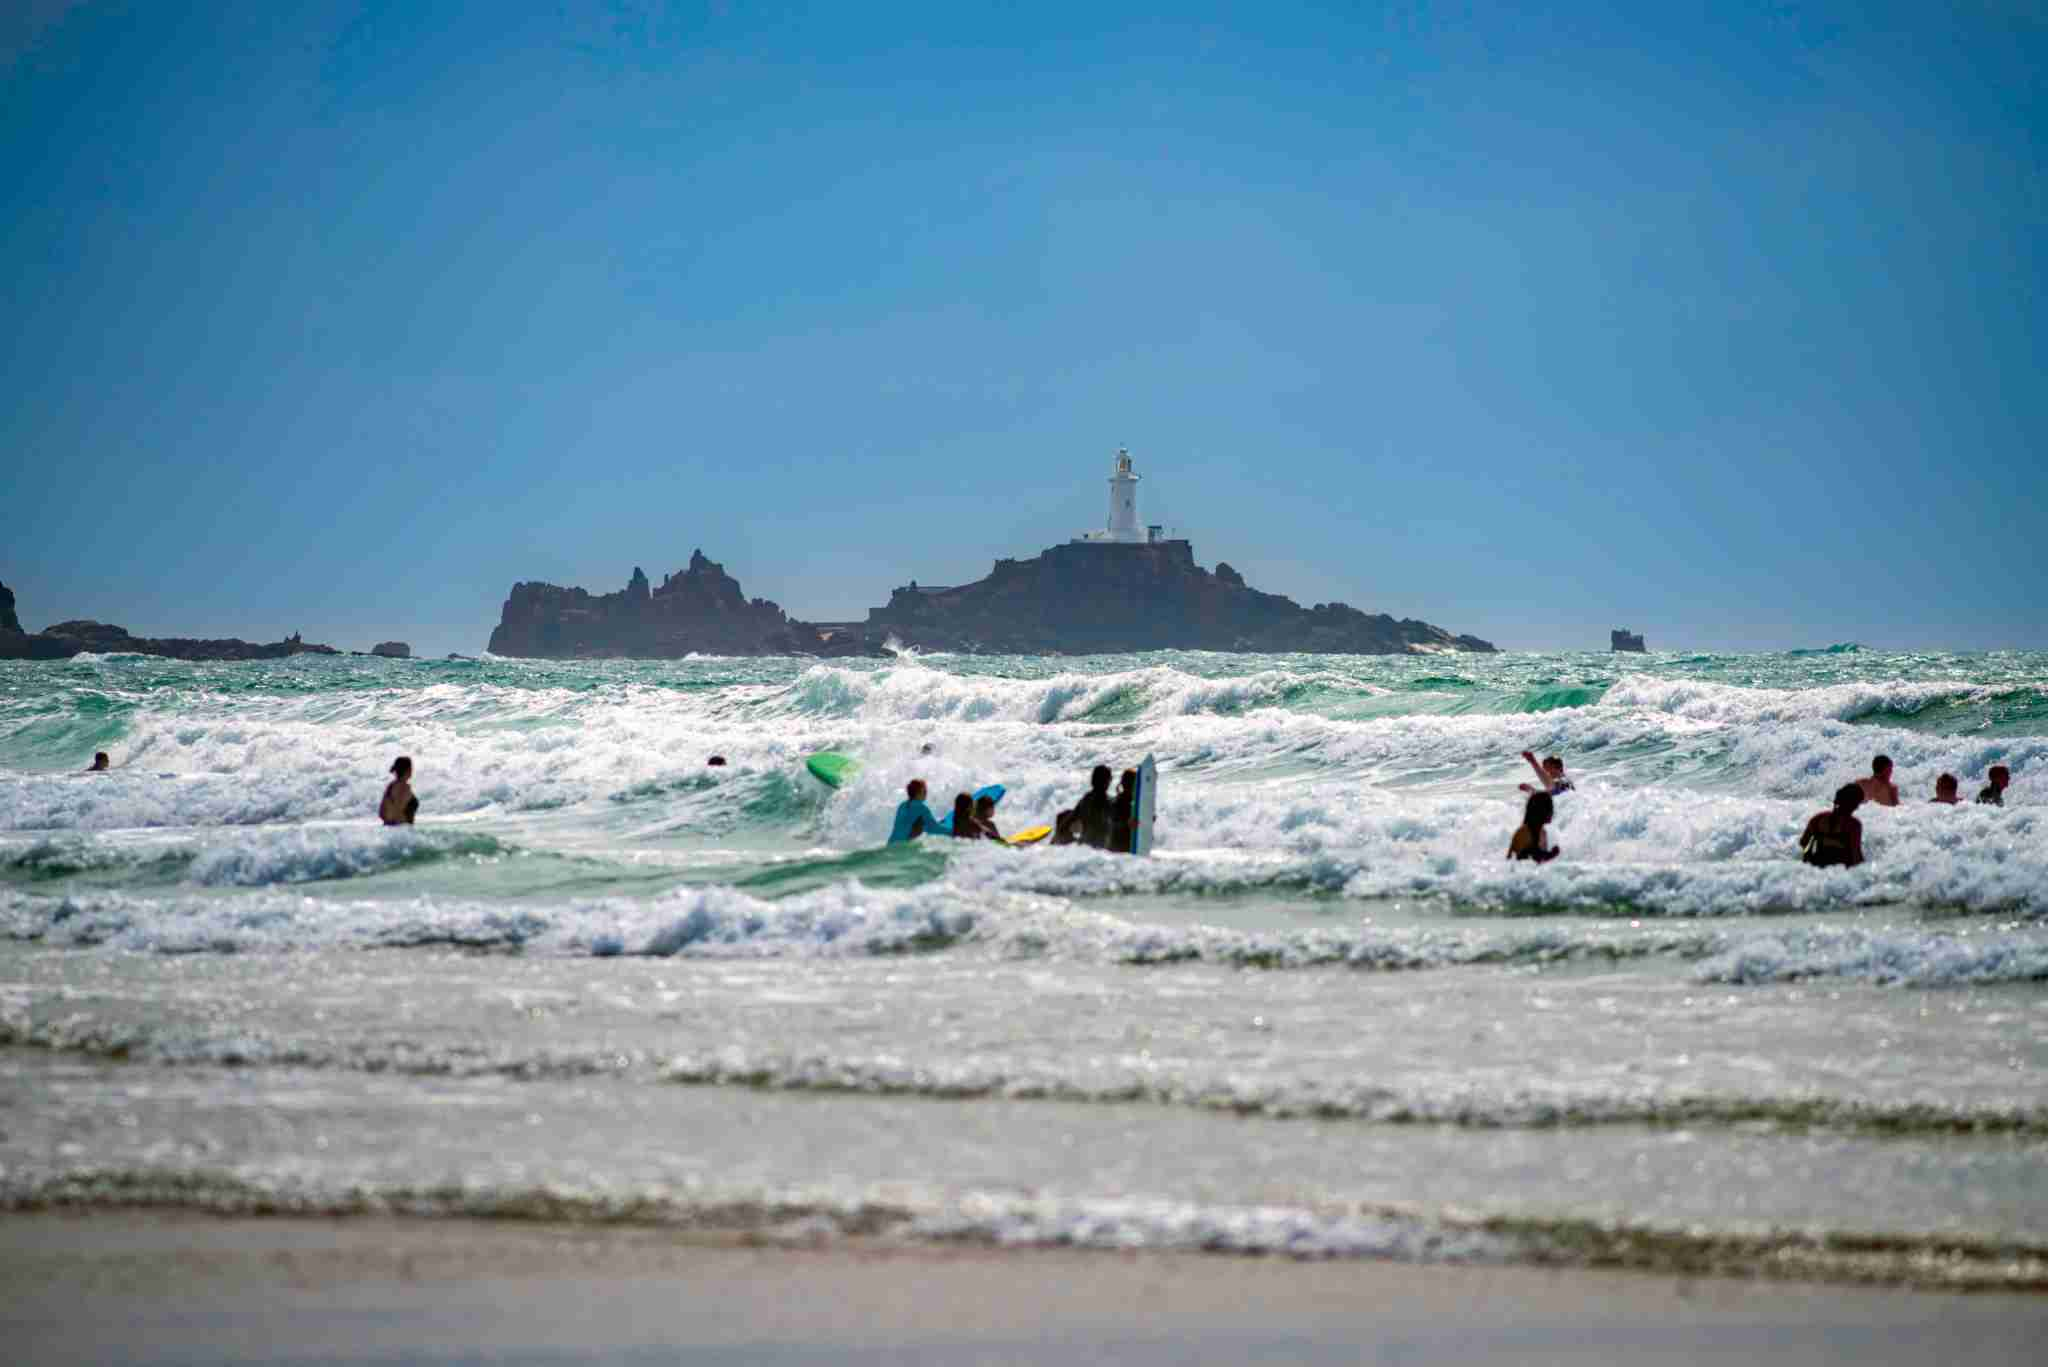 Silhouettes of surfers and swimmers, St. Ouen